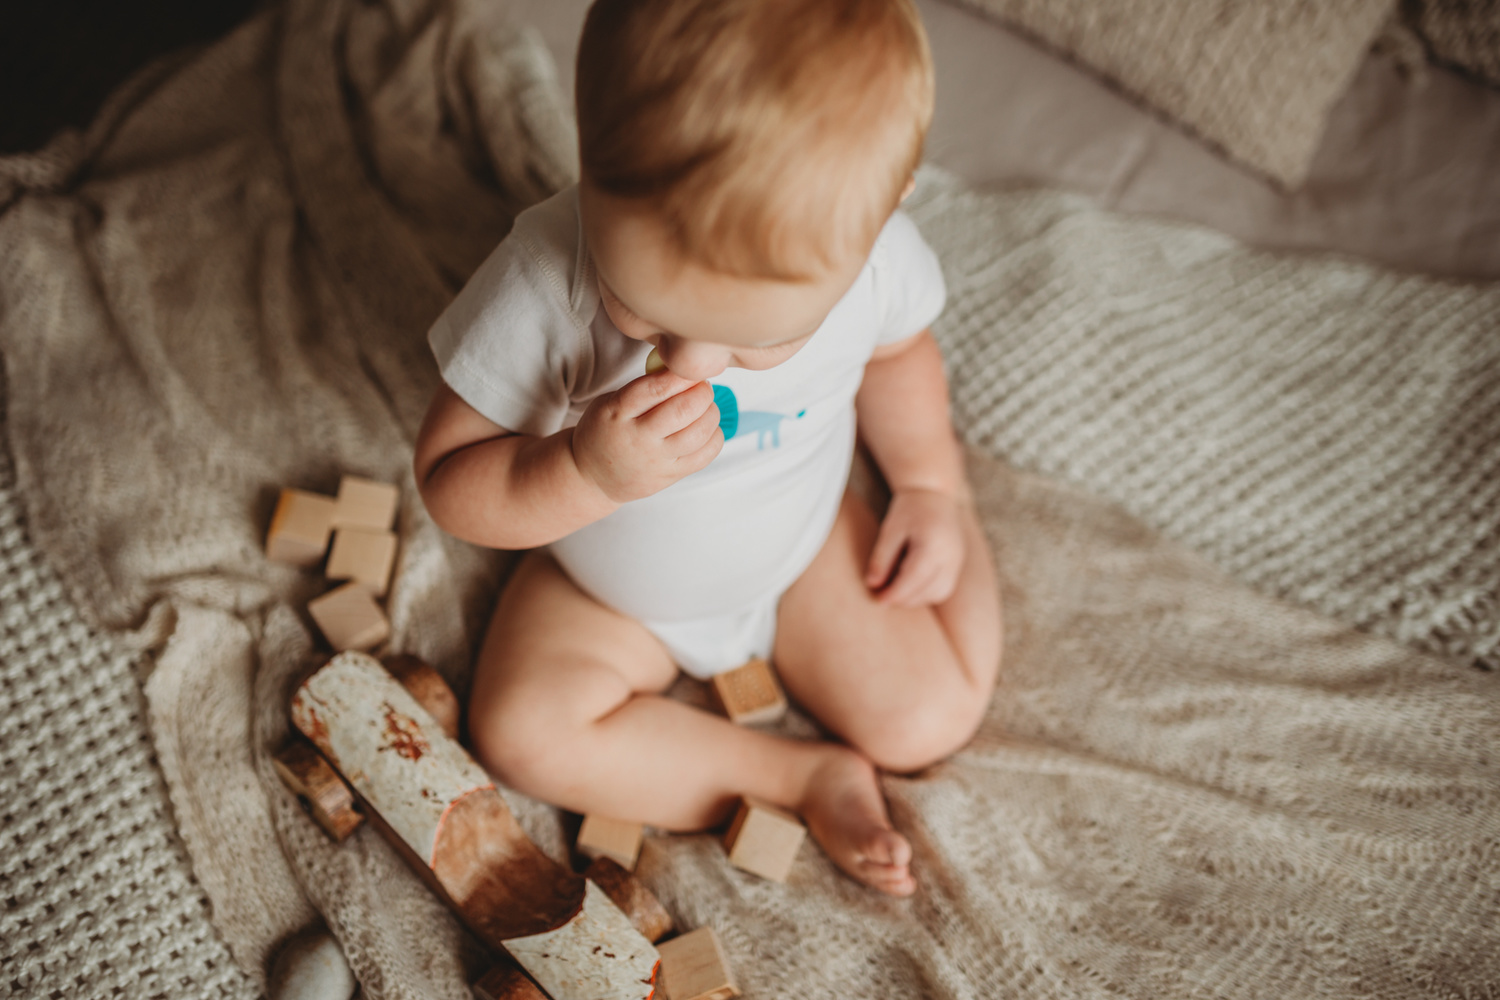 Wooden toys and baby by Michelle Coxall